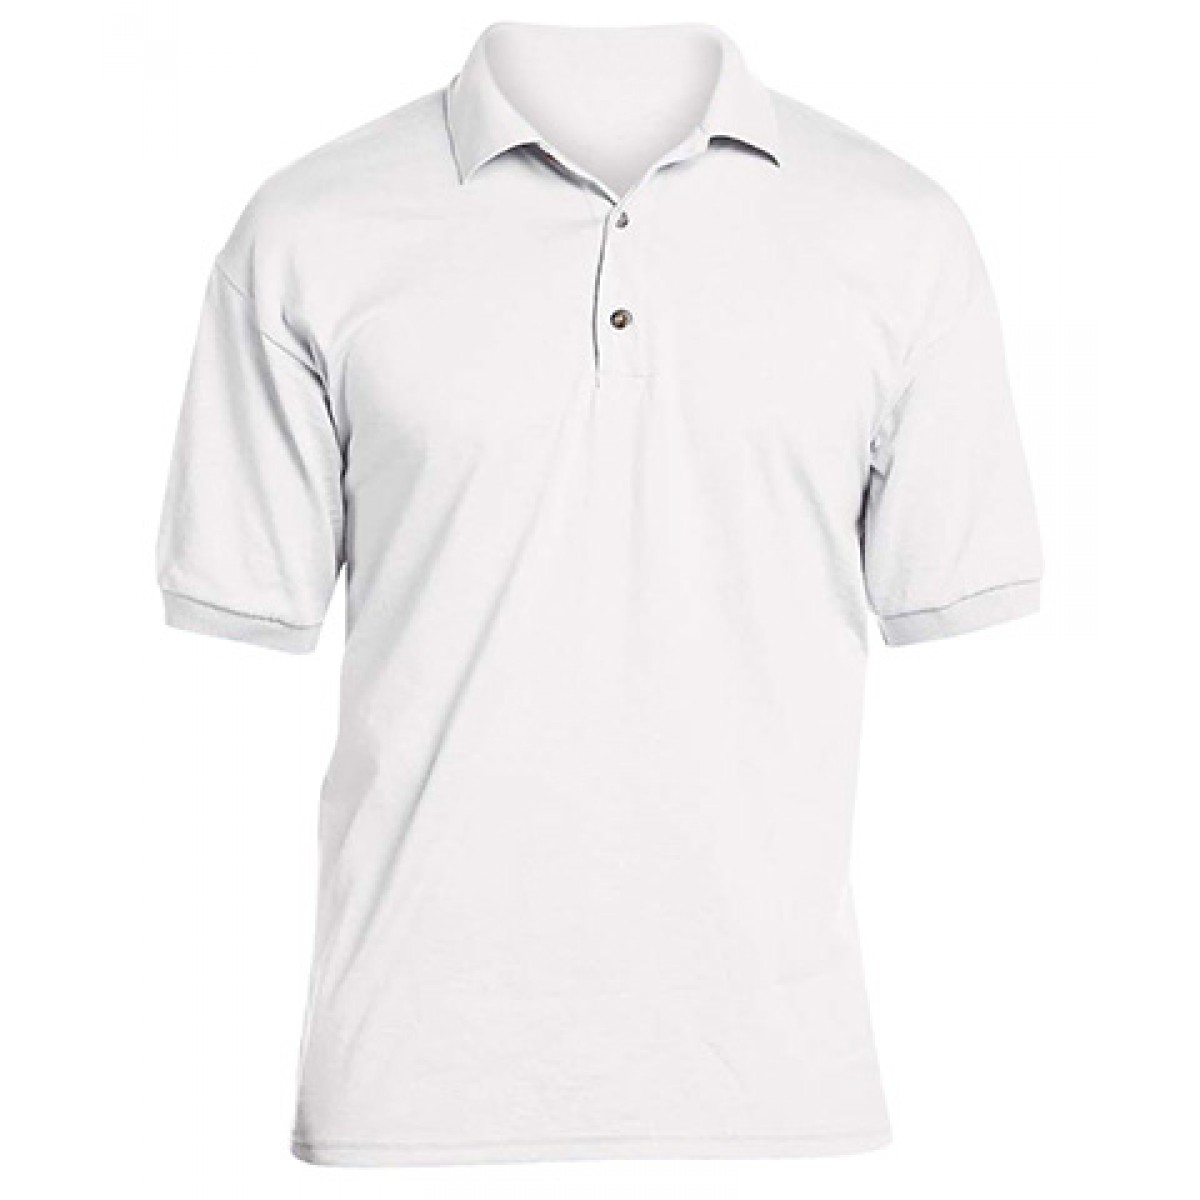 Jersey Polo 50/50 -White-2XL